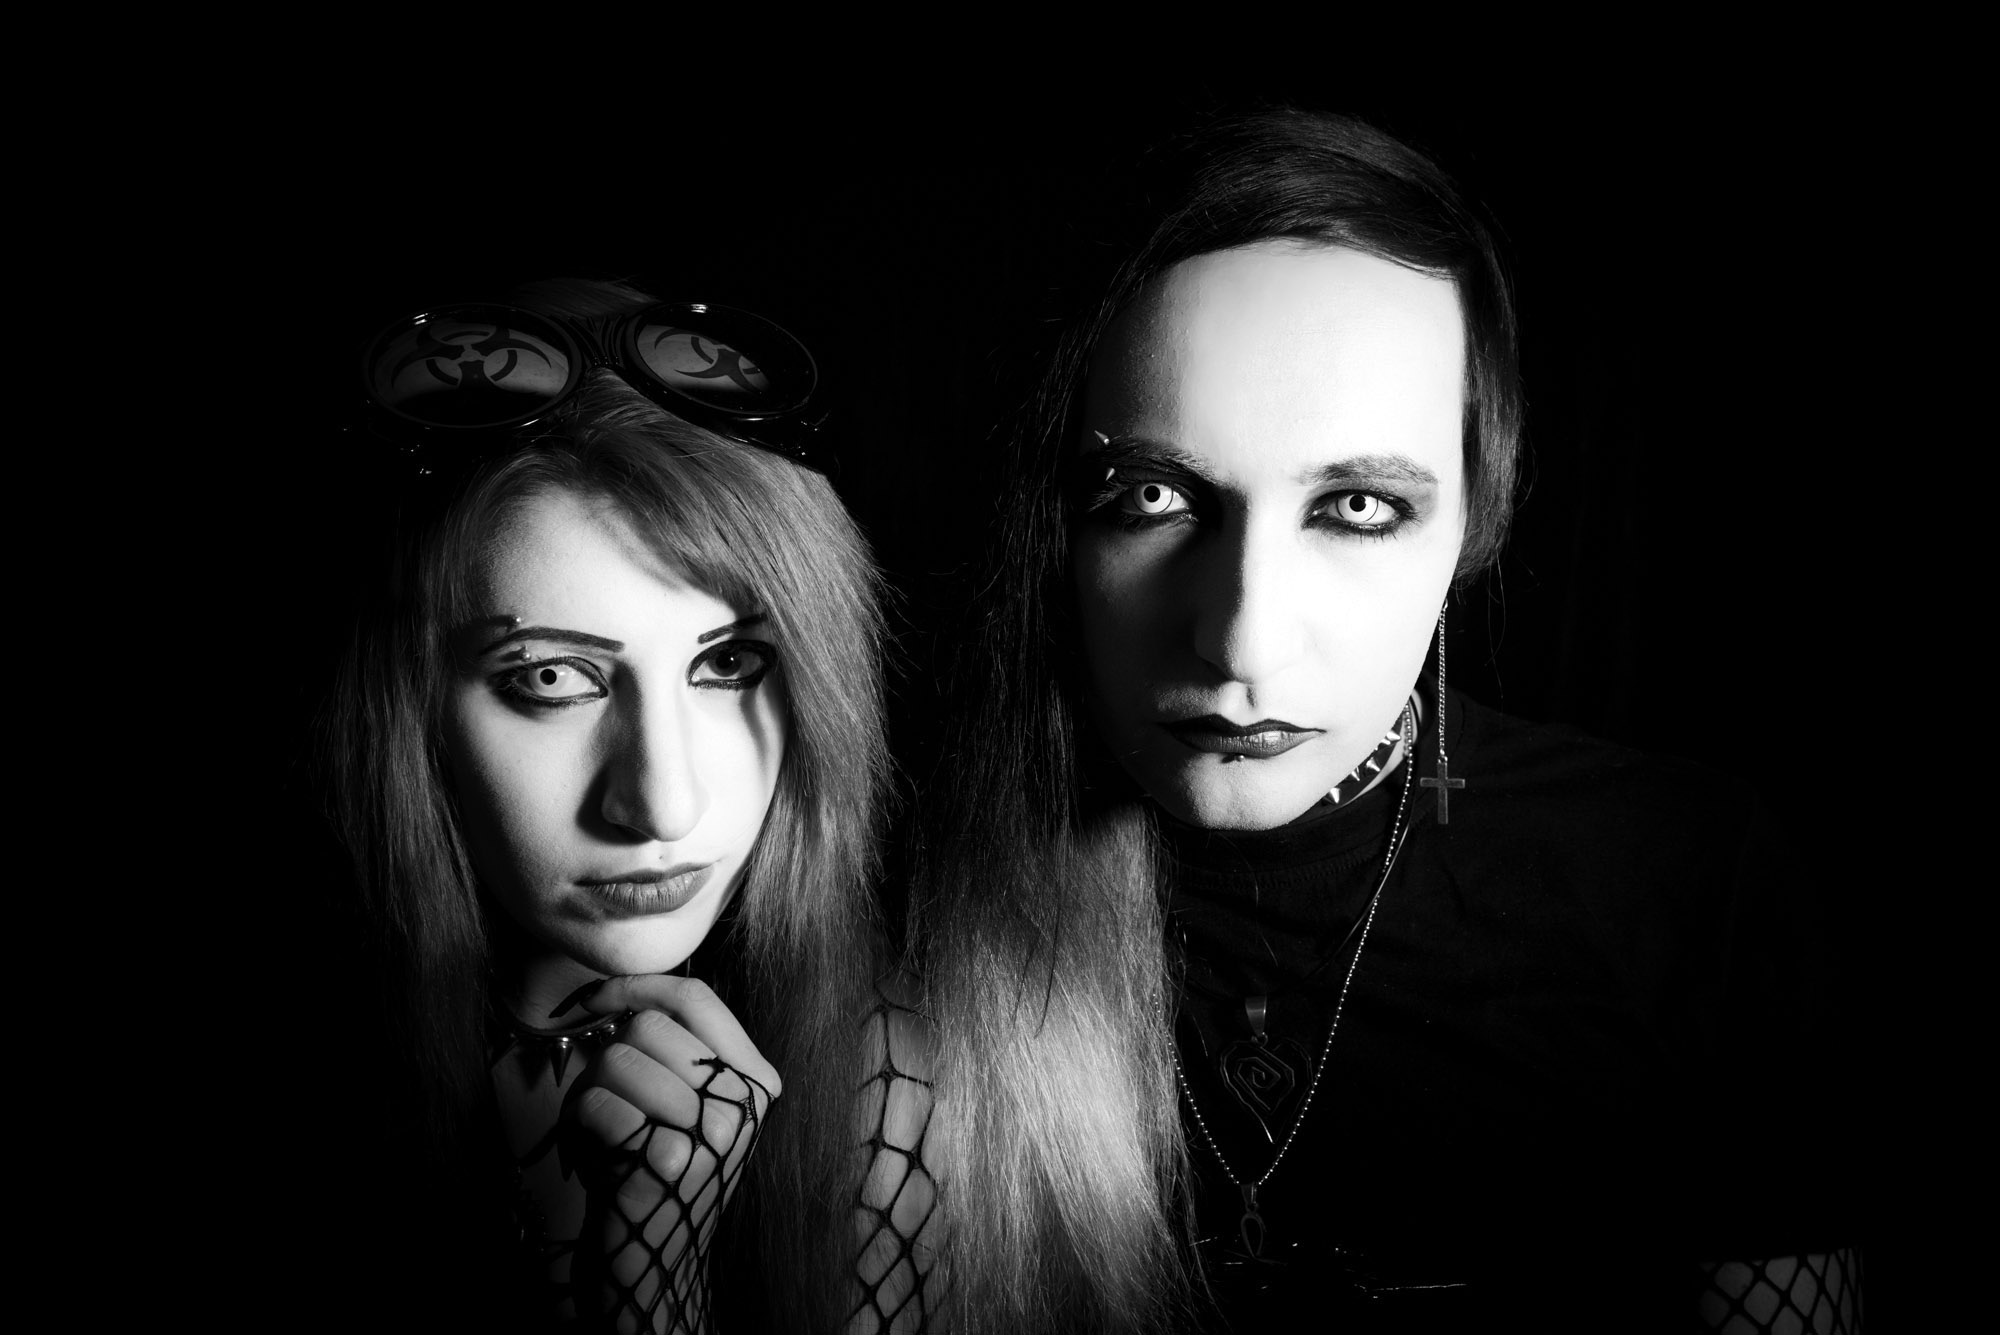 "Bella and Sandro ""Manson,"" Georgia's only gothic couple. Influenced by American musician Marilyn Manson, the couple plan to hold an event to markWorld Goth Day in Tbilisi on22 May 2016. ""I hope it will contribute to the development of the Georgian Gothic music and subculture scene,""he says."